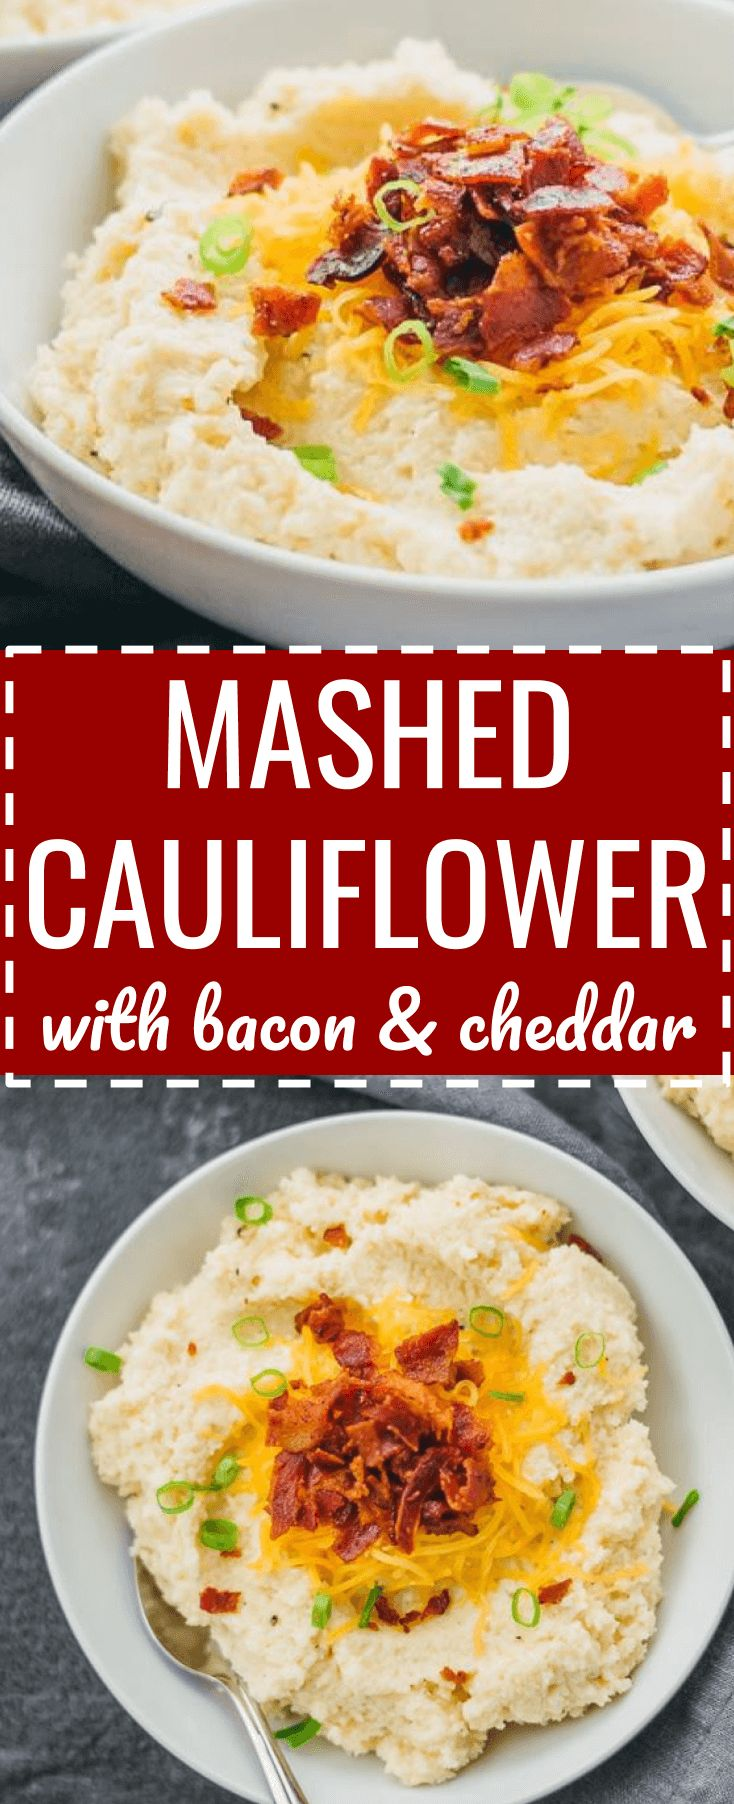 Step aside mashed potatoes -- this cheesy mashed cauliflower is creamy and fluffy, and topped with cheddar cheese and crispy bacon. loaded / keto / low carb / diet / atkins / induction / meals / recipes / easy / dinner / lunch / foods / healthy / recipe / garlic / paleo / whole 30 / with cream cheese / weight watchers / 21 day fix / how to make / best / creamy / rice / dinner / blender / simple / cheddar / leftovers / calories / quick #thanksgiving #sides via @savory_tooth